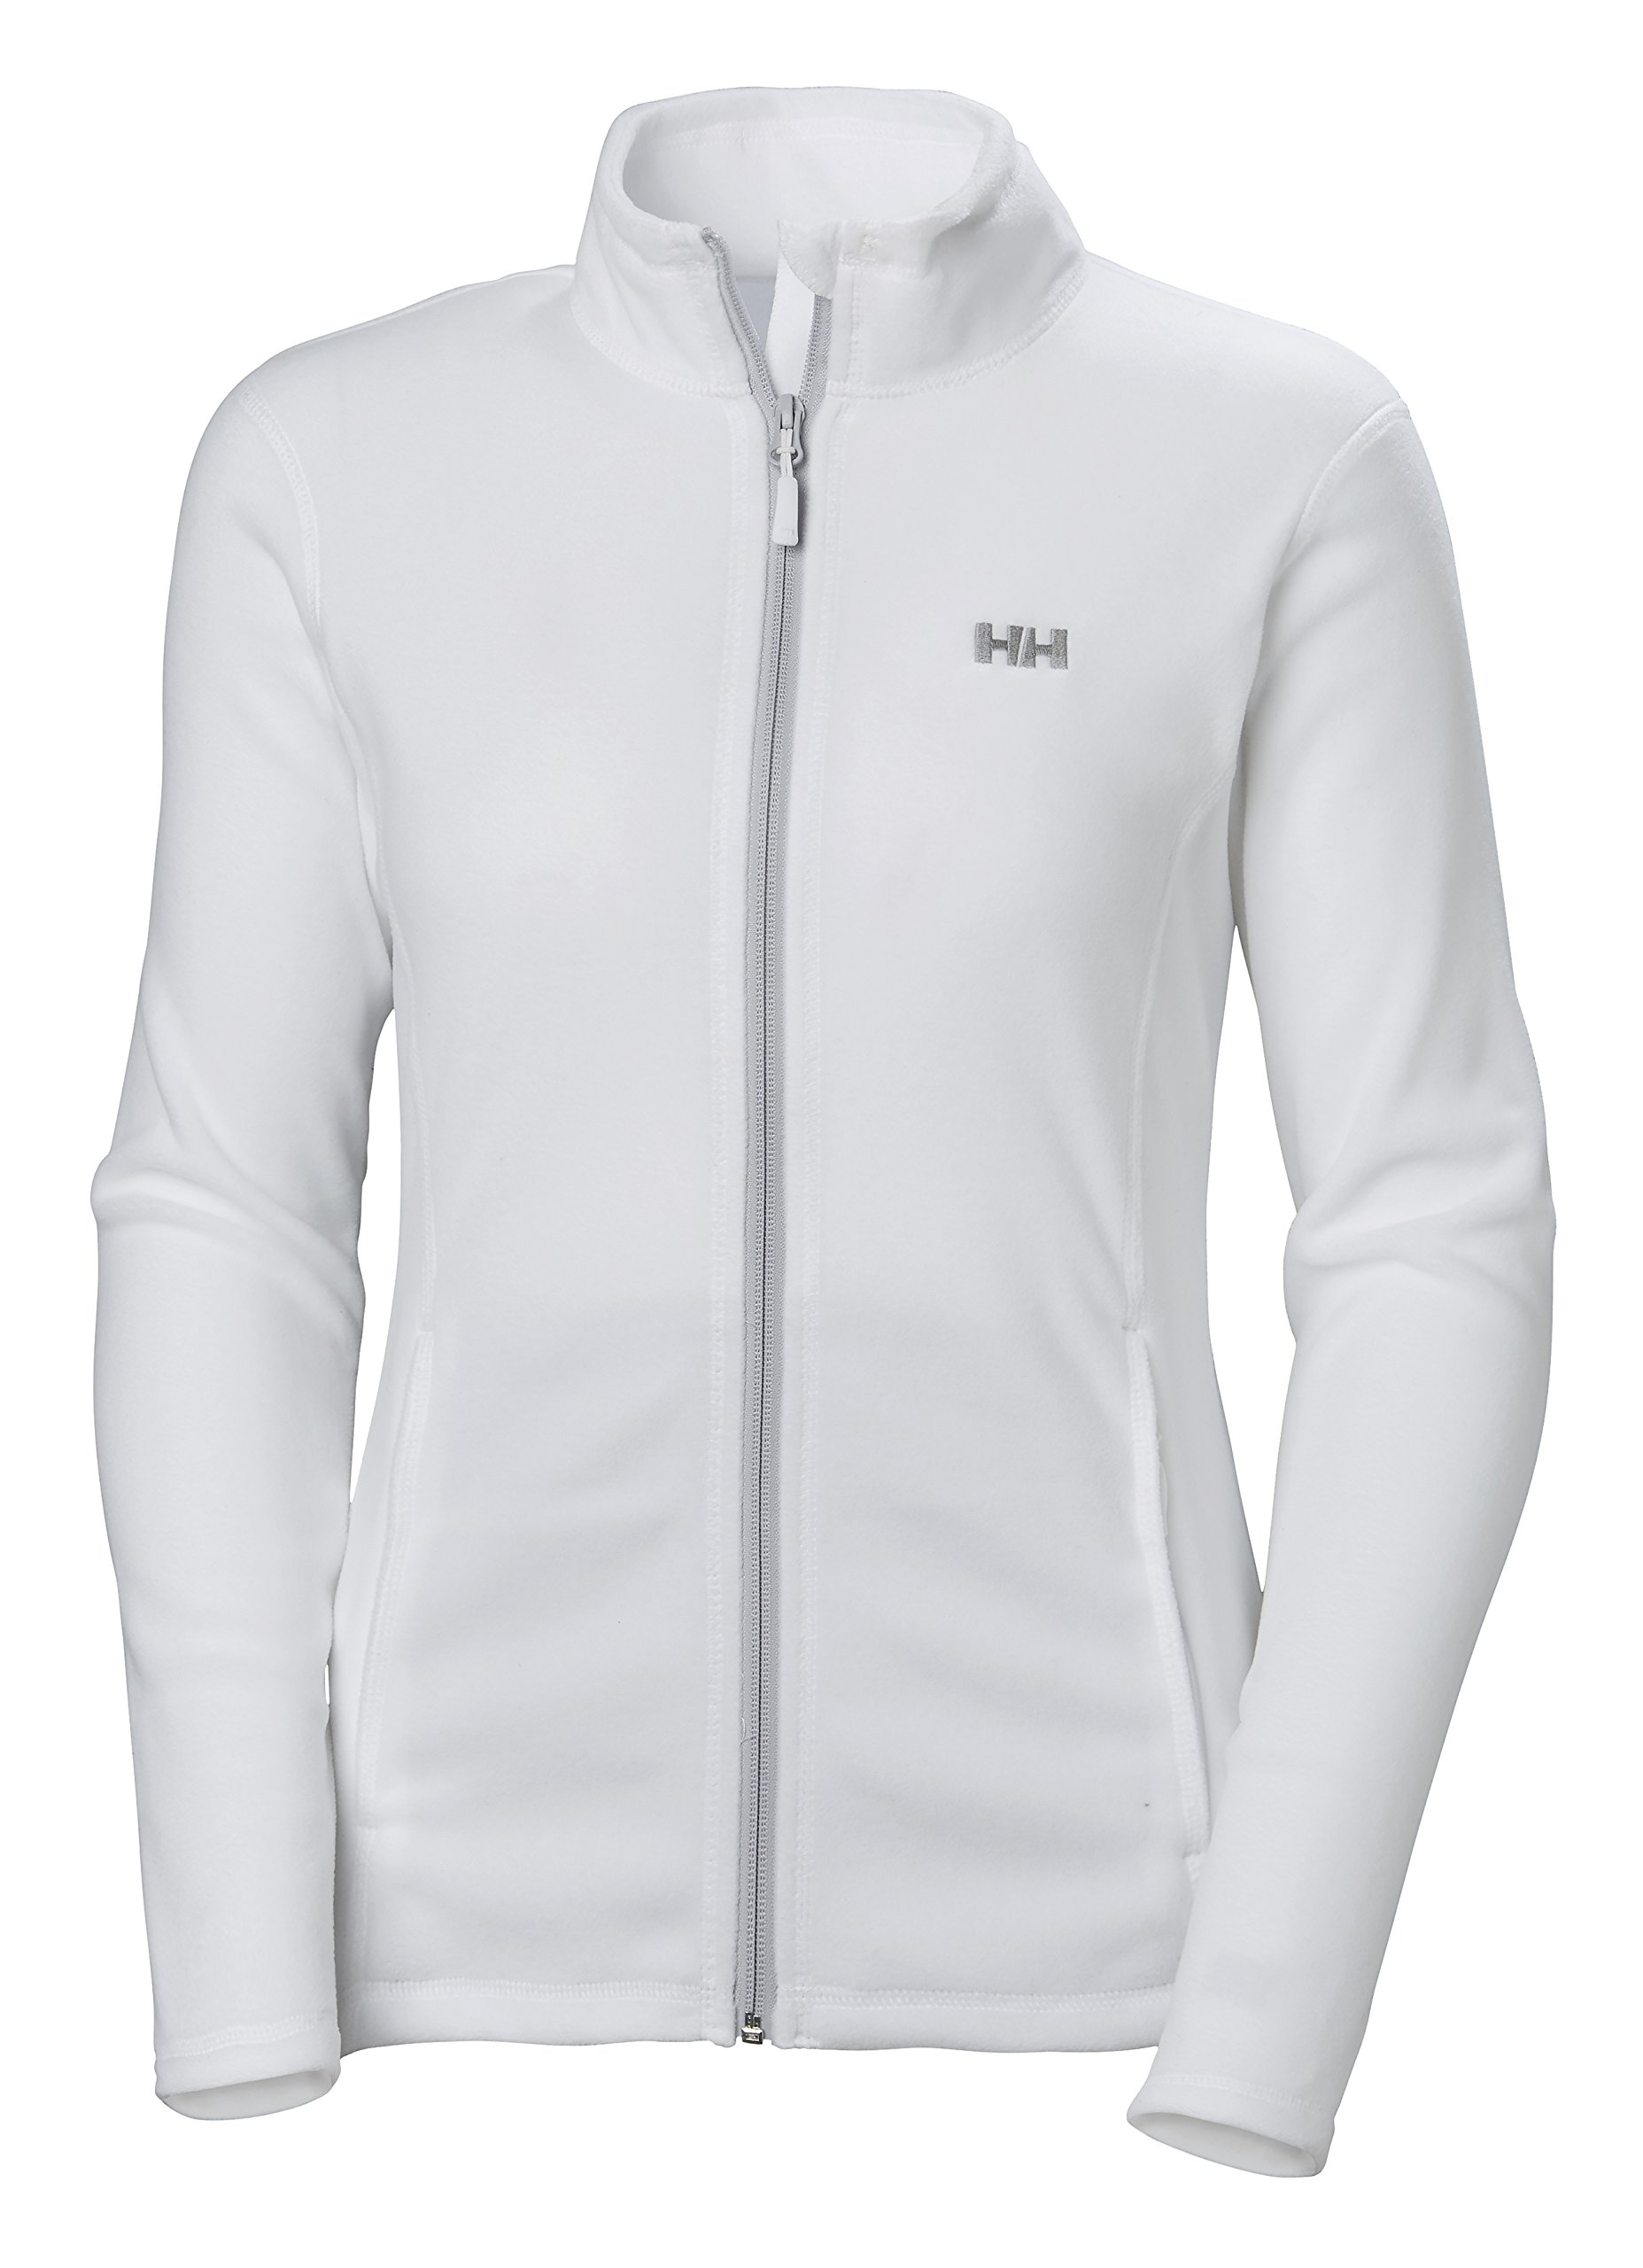 71QxX5DCm3L - Helly Hansen Women's Daybreaker Fleece